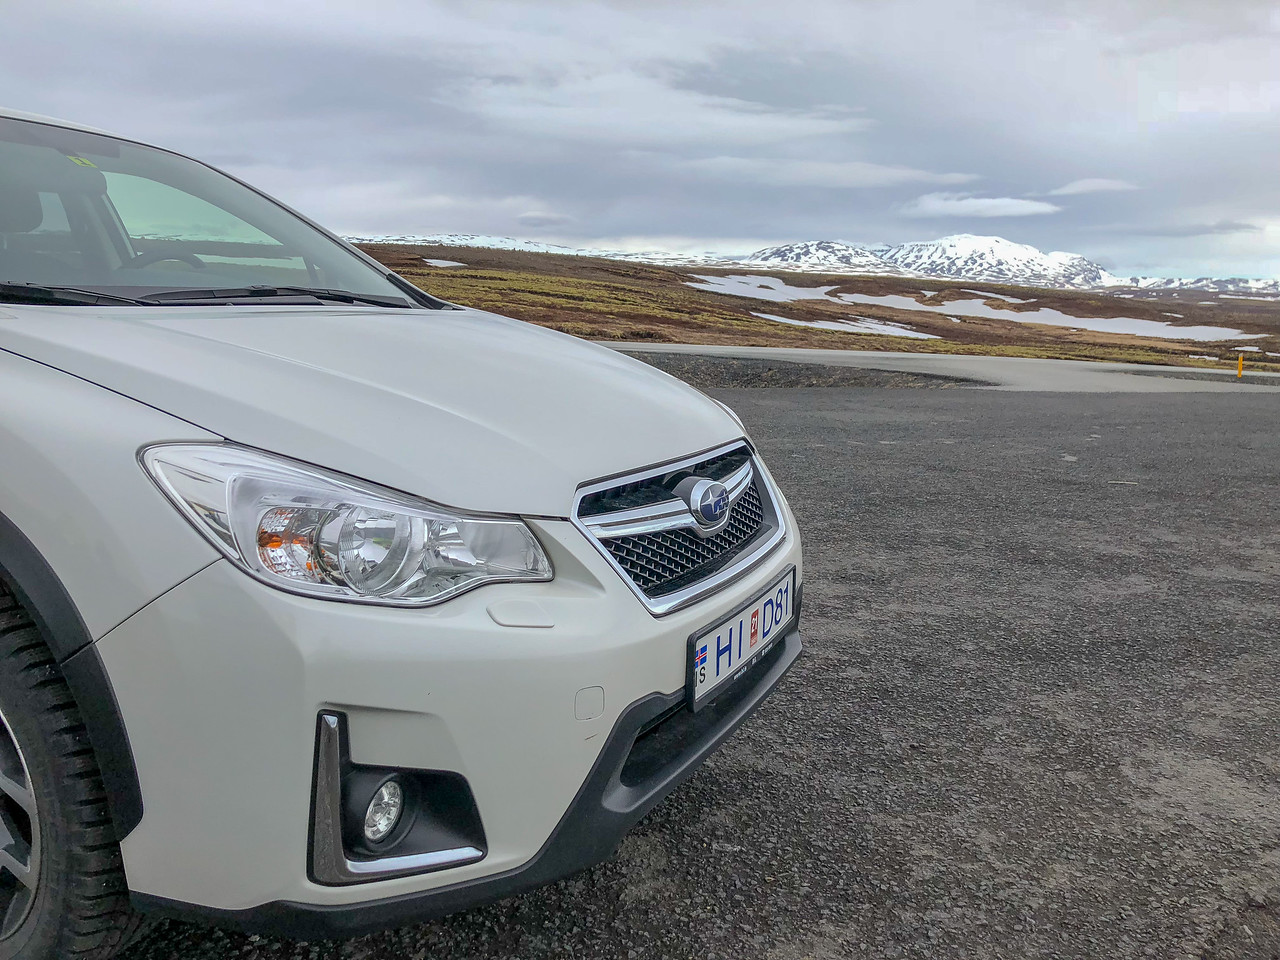 Driving the golden circle with Dad. Our ride was a cool subie. Awesome scenery here.